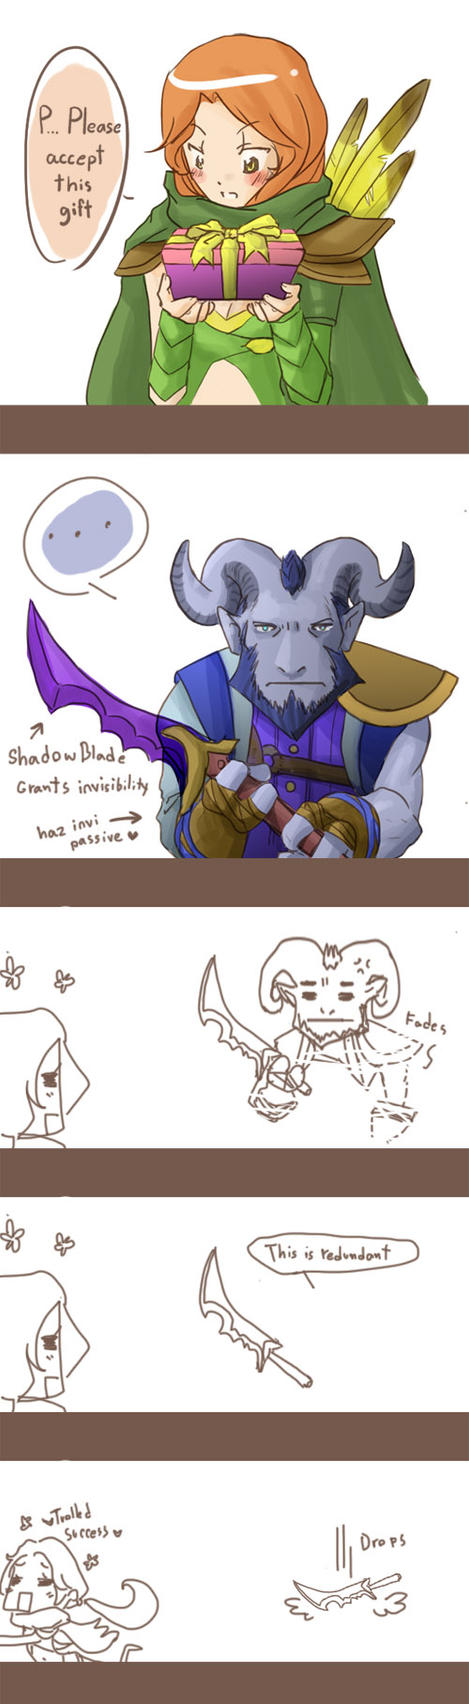 Dota2 - Troll runner strikes again by spidercandy